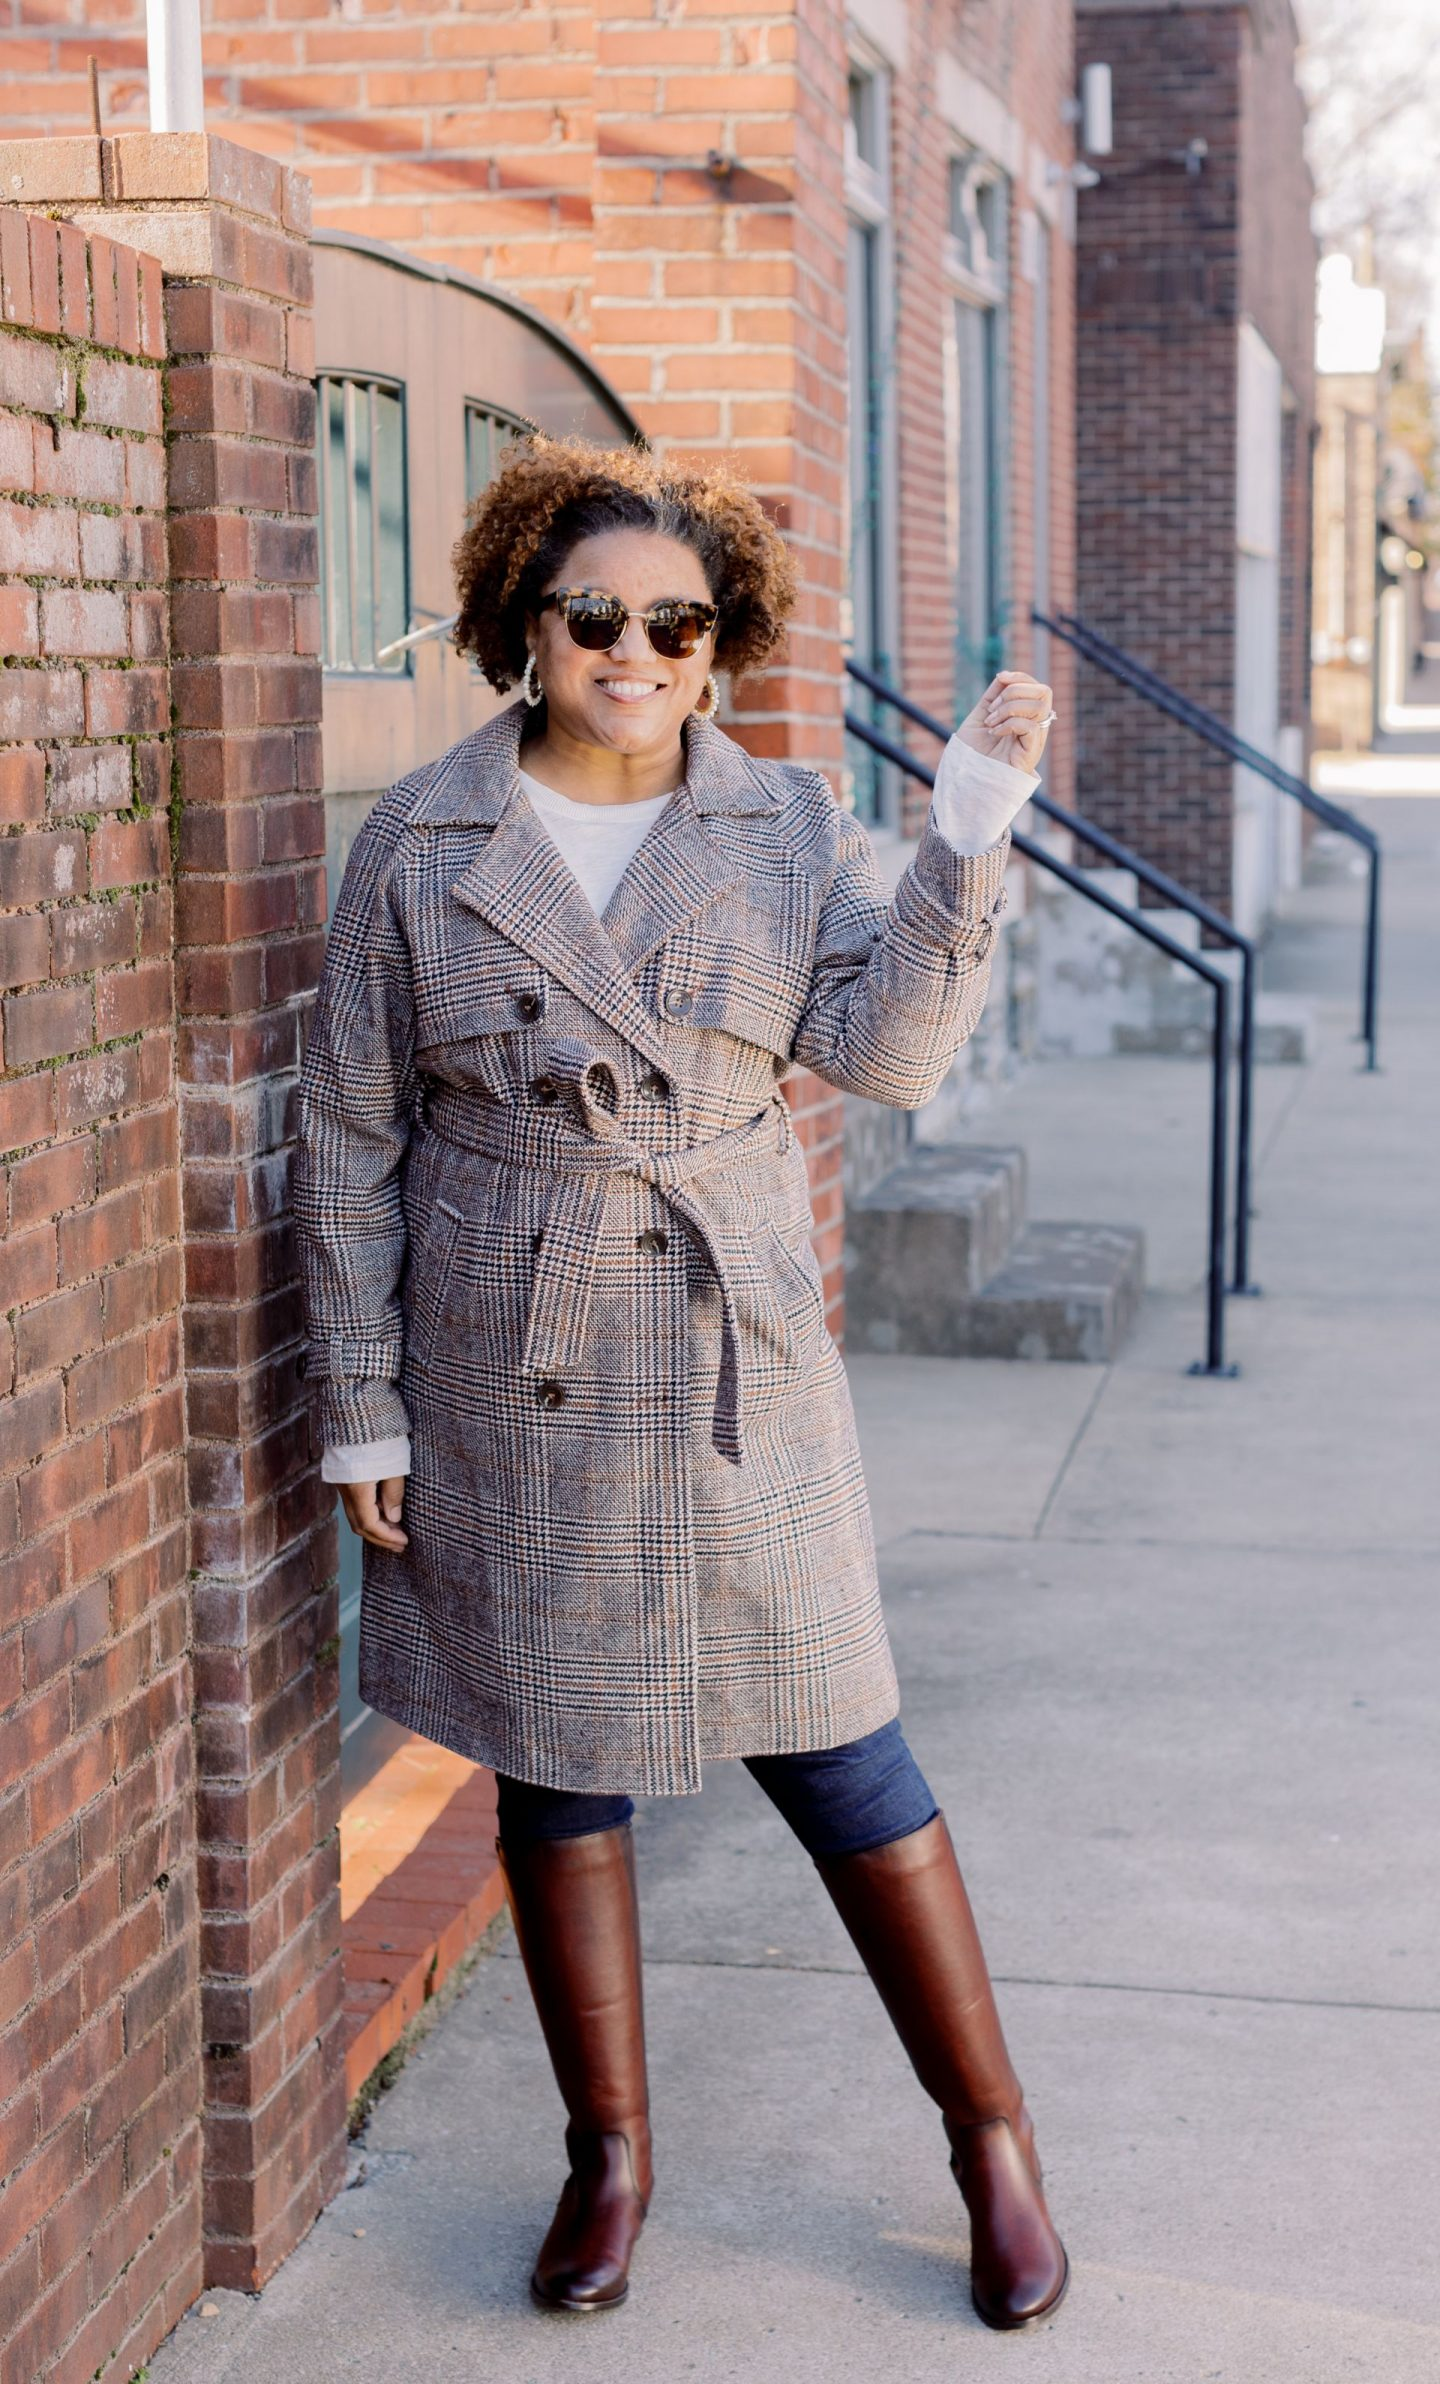 Plaid Trench Coat by popular Kentucky fashion blog, Really Rynetta: image of a woman wearing a Halogen plaid trench coat, dark wash skinny jeans, and brown knee high riding boots.